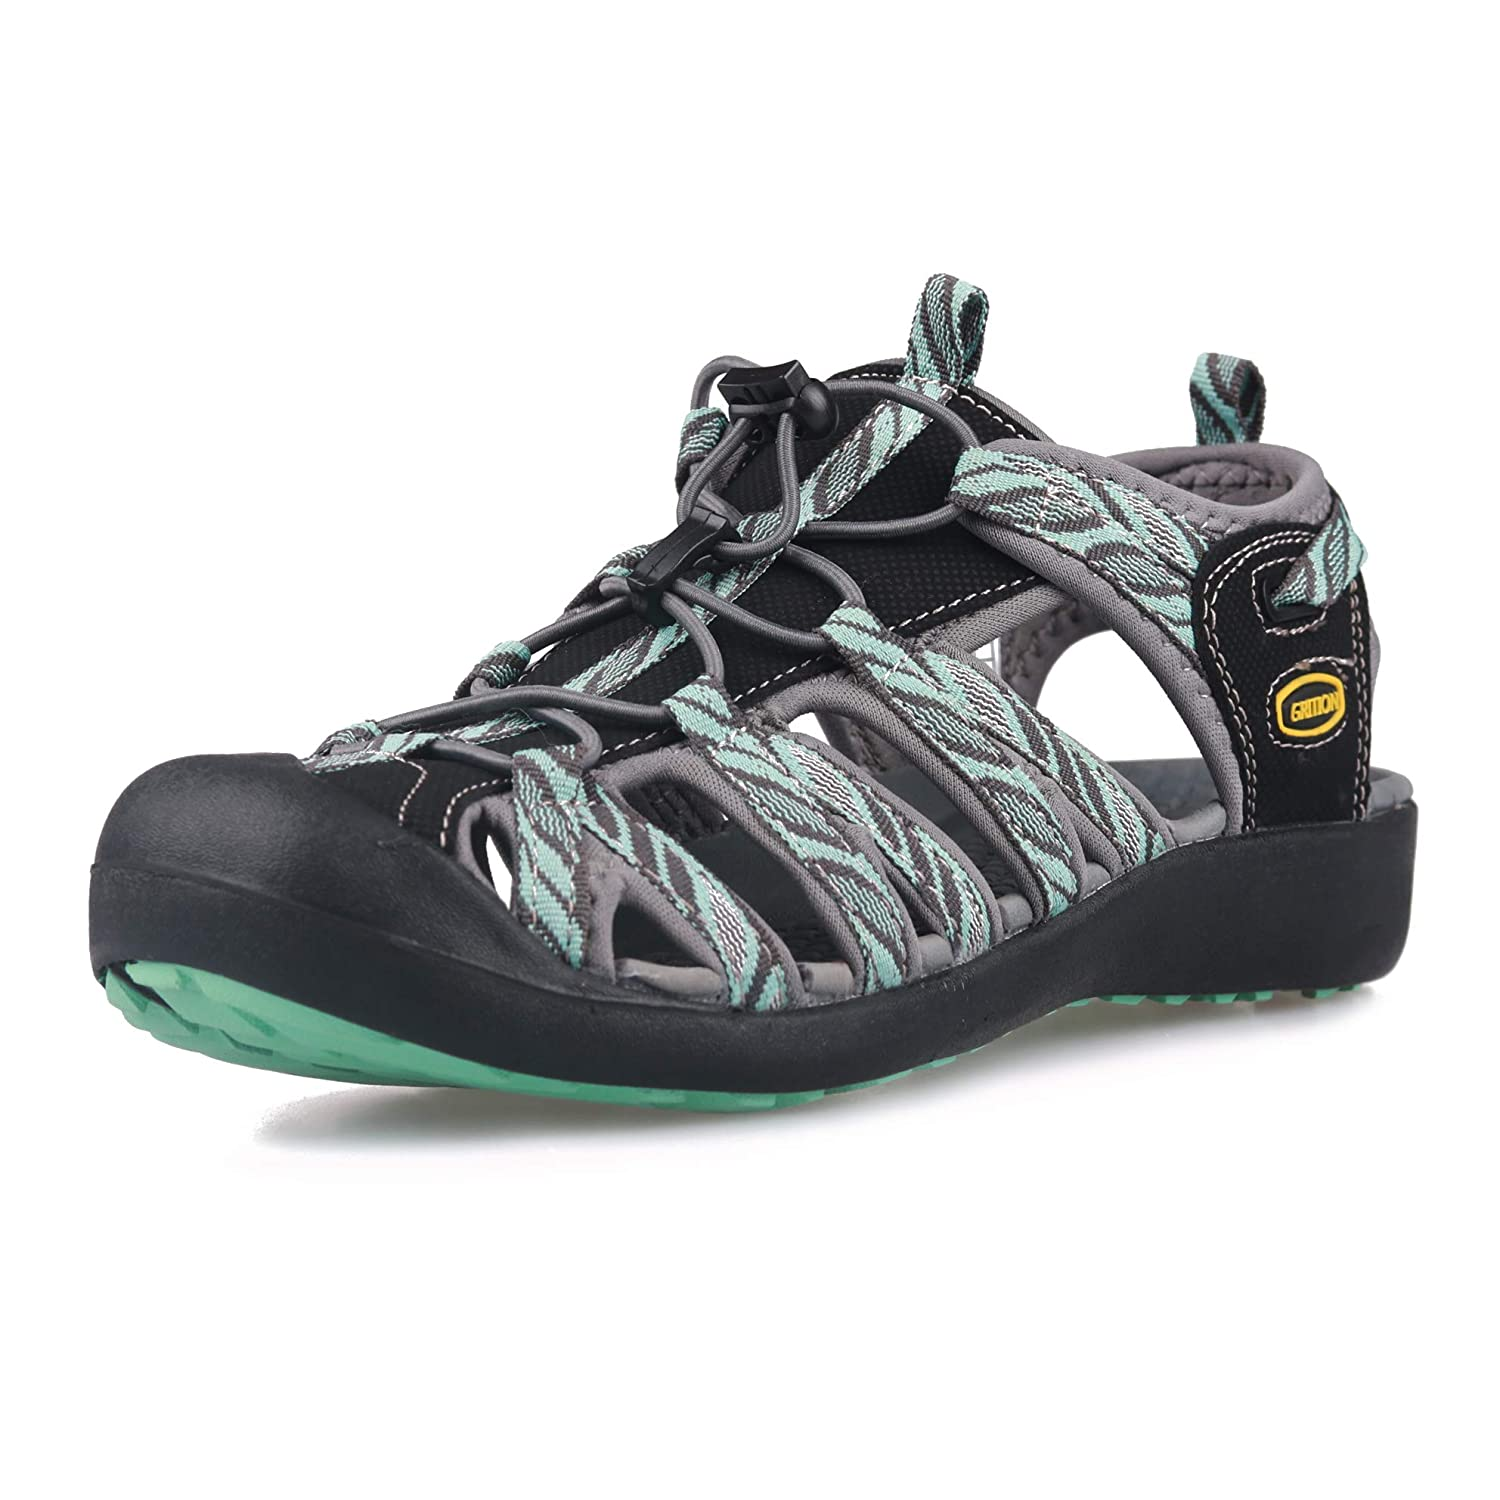 ac1c0d60248 GRITION Women Athletic Hiking Sandals Closed Toe Water Shoes Adventure Outdoor  Sport Trail Summer  Amazon.co.uk  Shoes   Bags